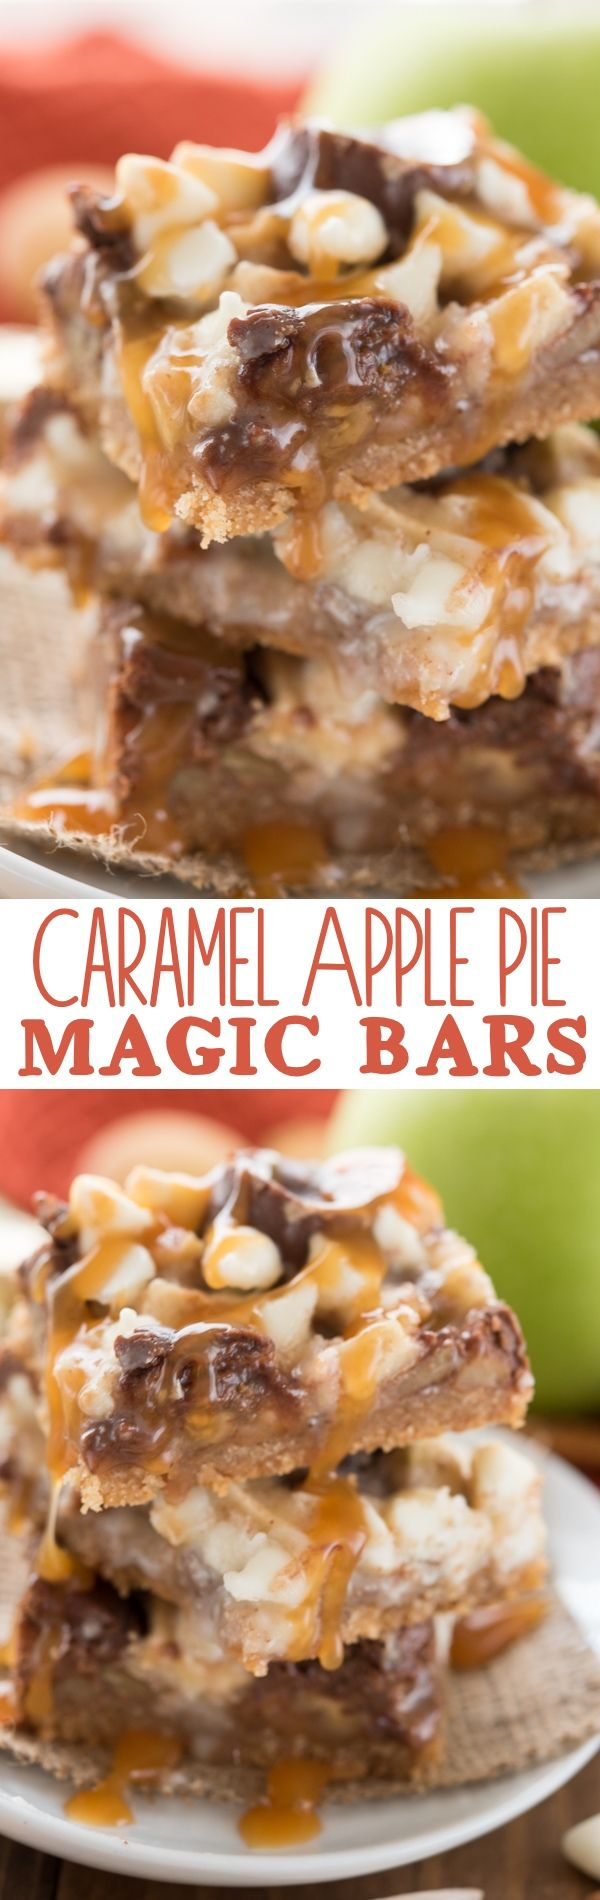 top 10 designer sunglasses brands We LOVED these Caramel Apple Pie Magic Bars  An easy recipe for fall full of caramel  apple pie flavor  and a Nilla Wafer crust